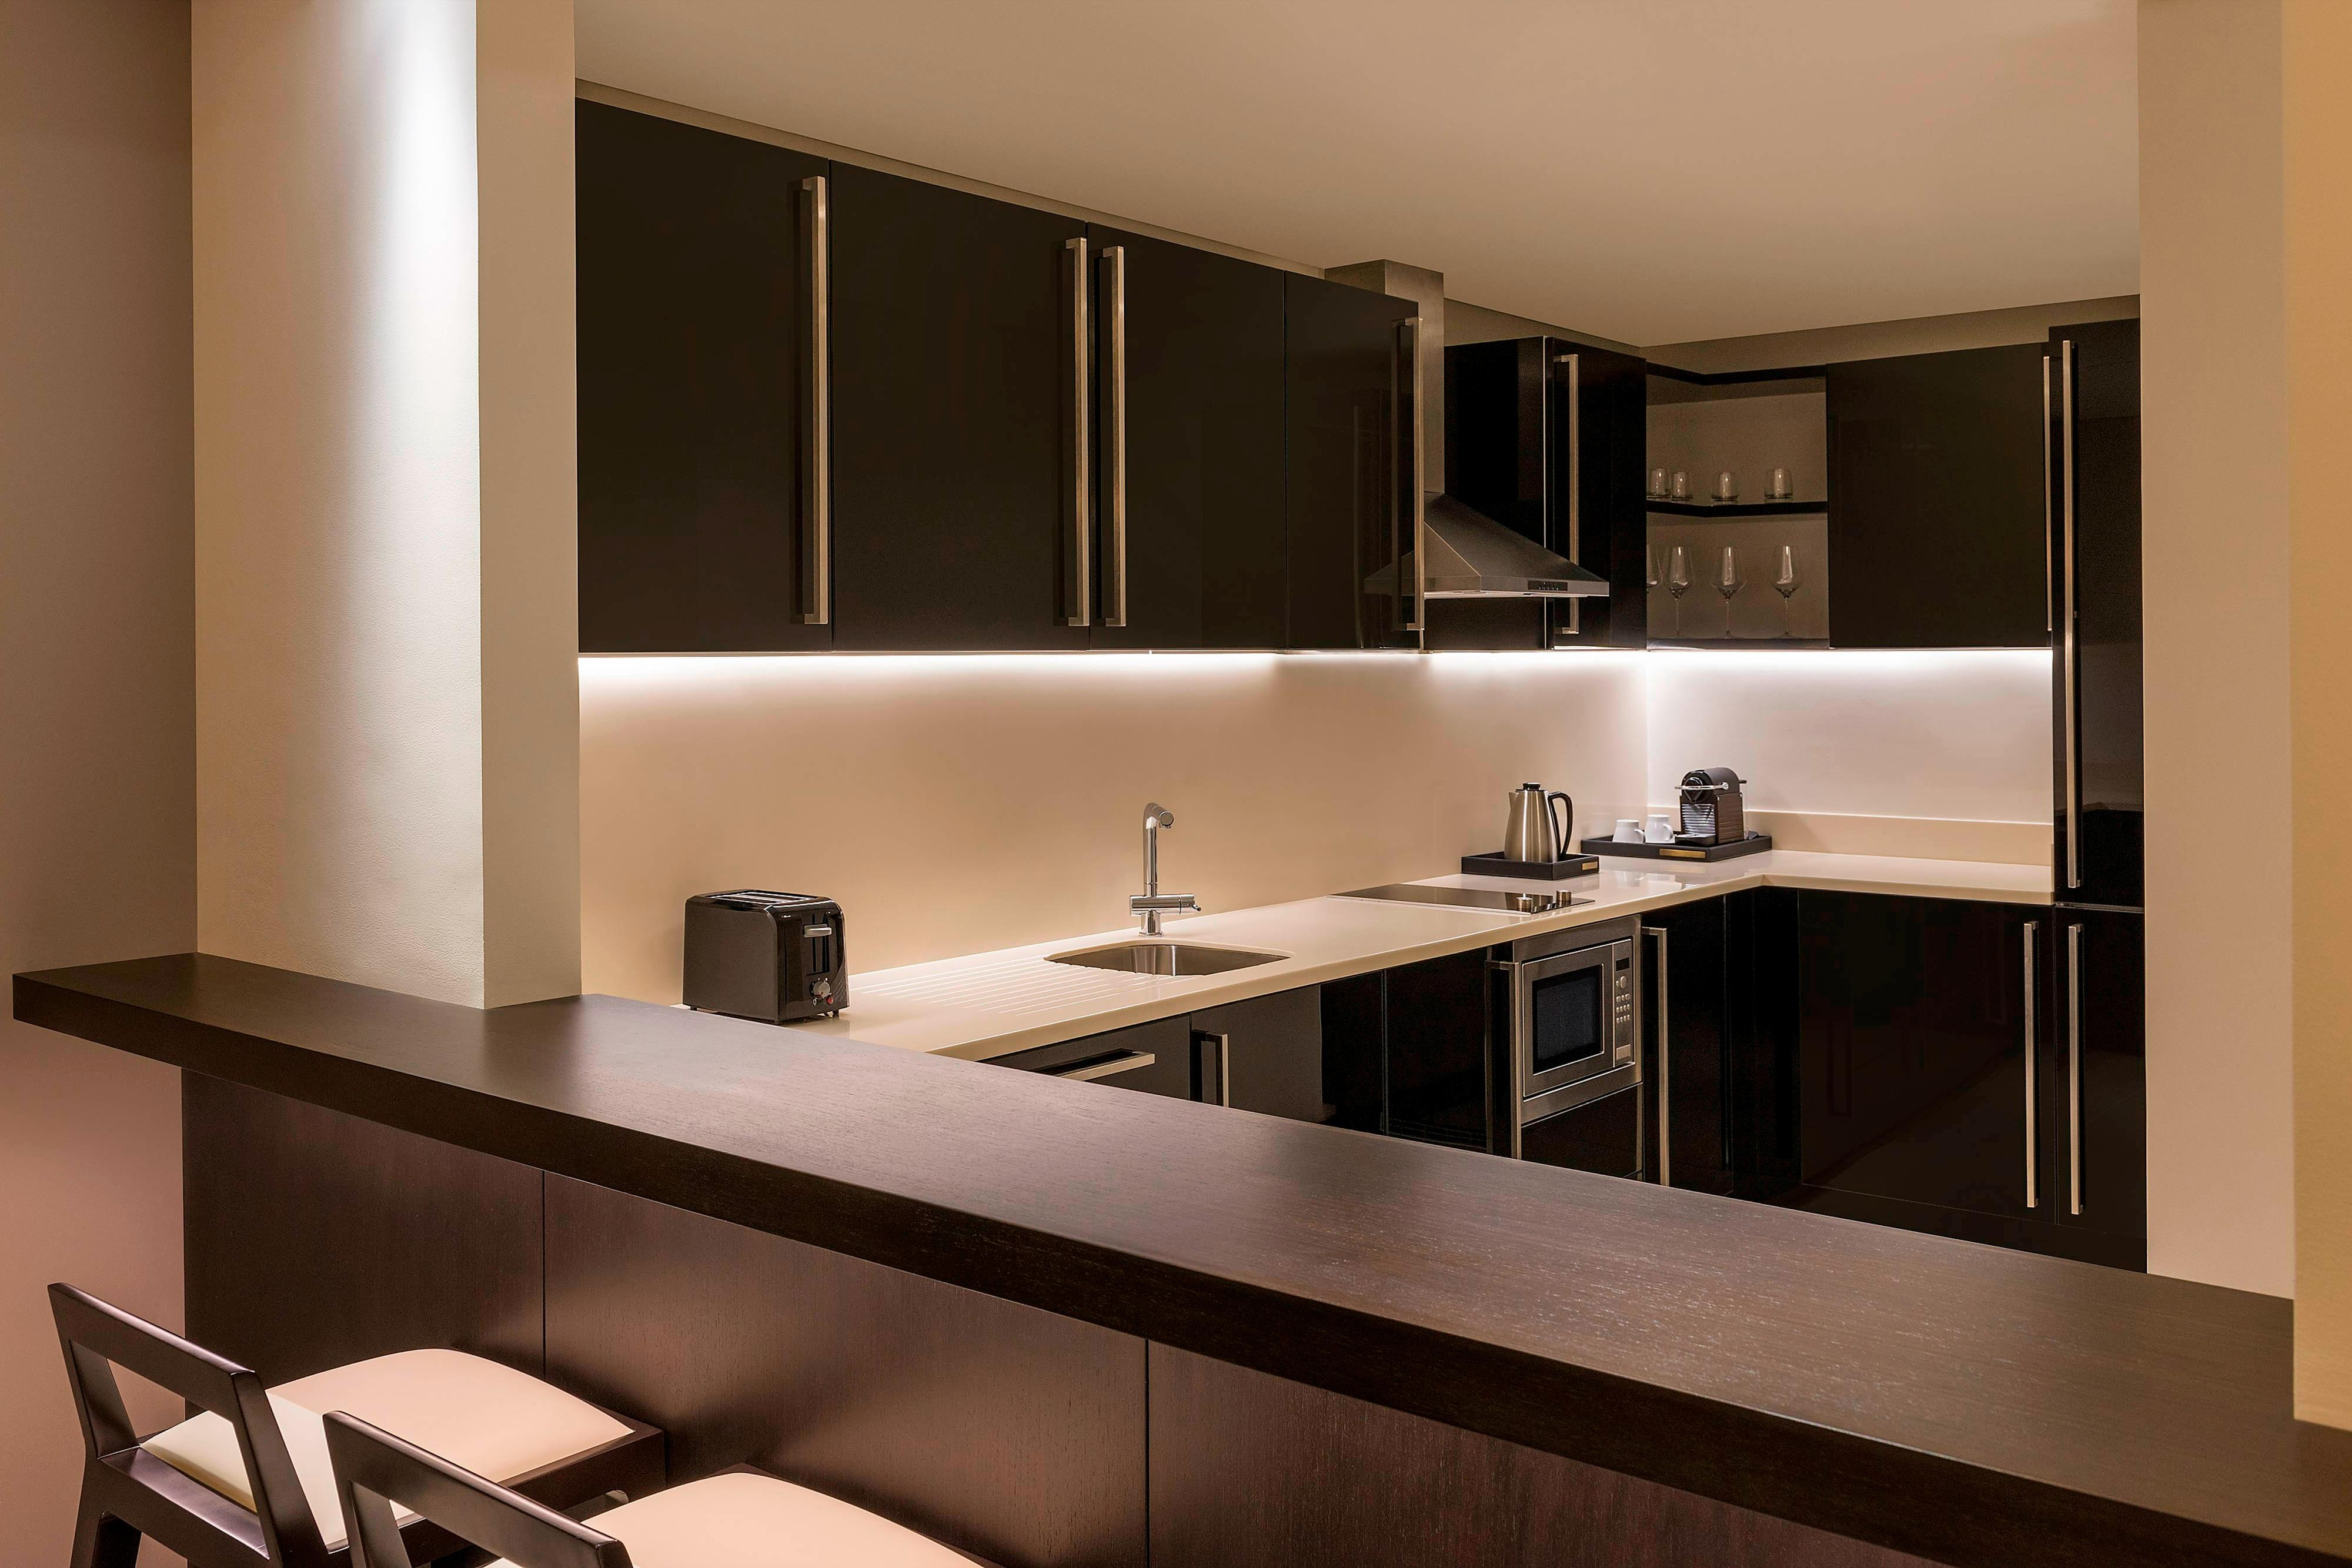 Two-Bedroom Apartment Kitchen